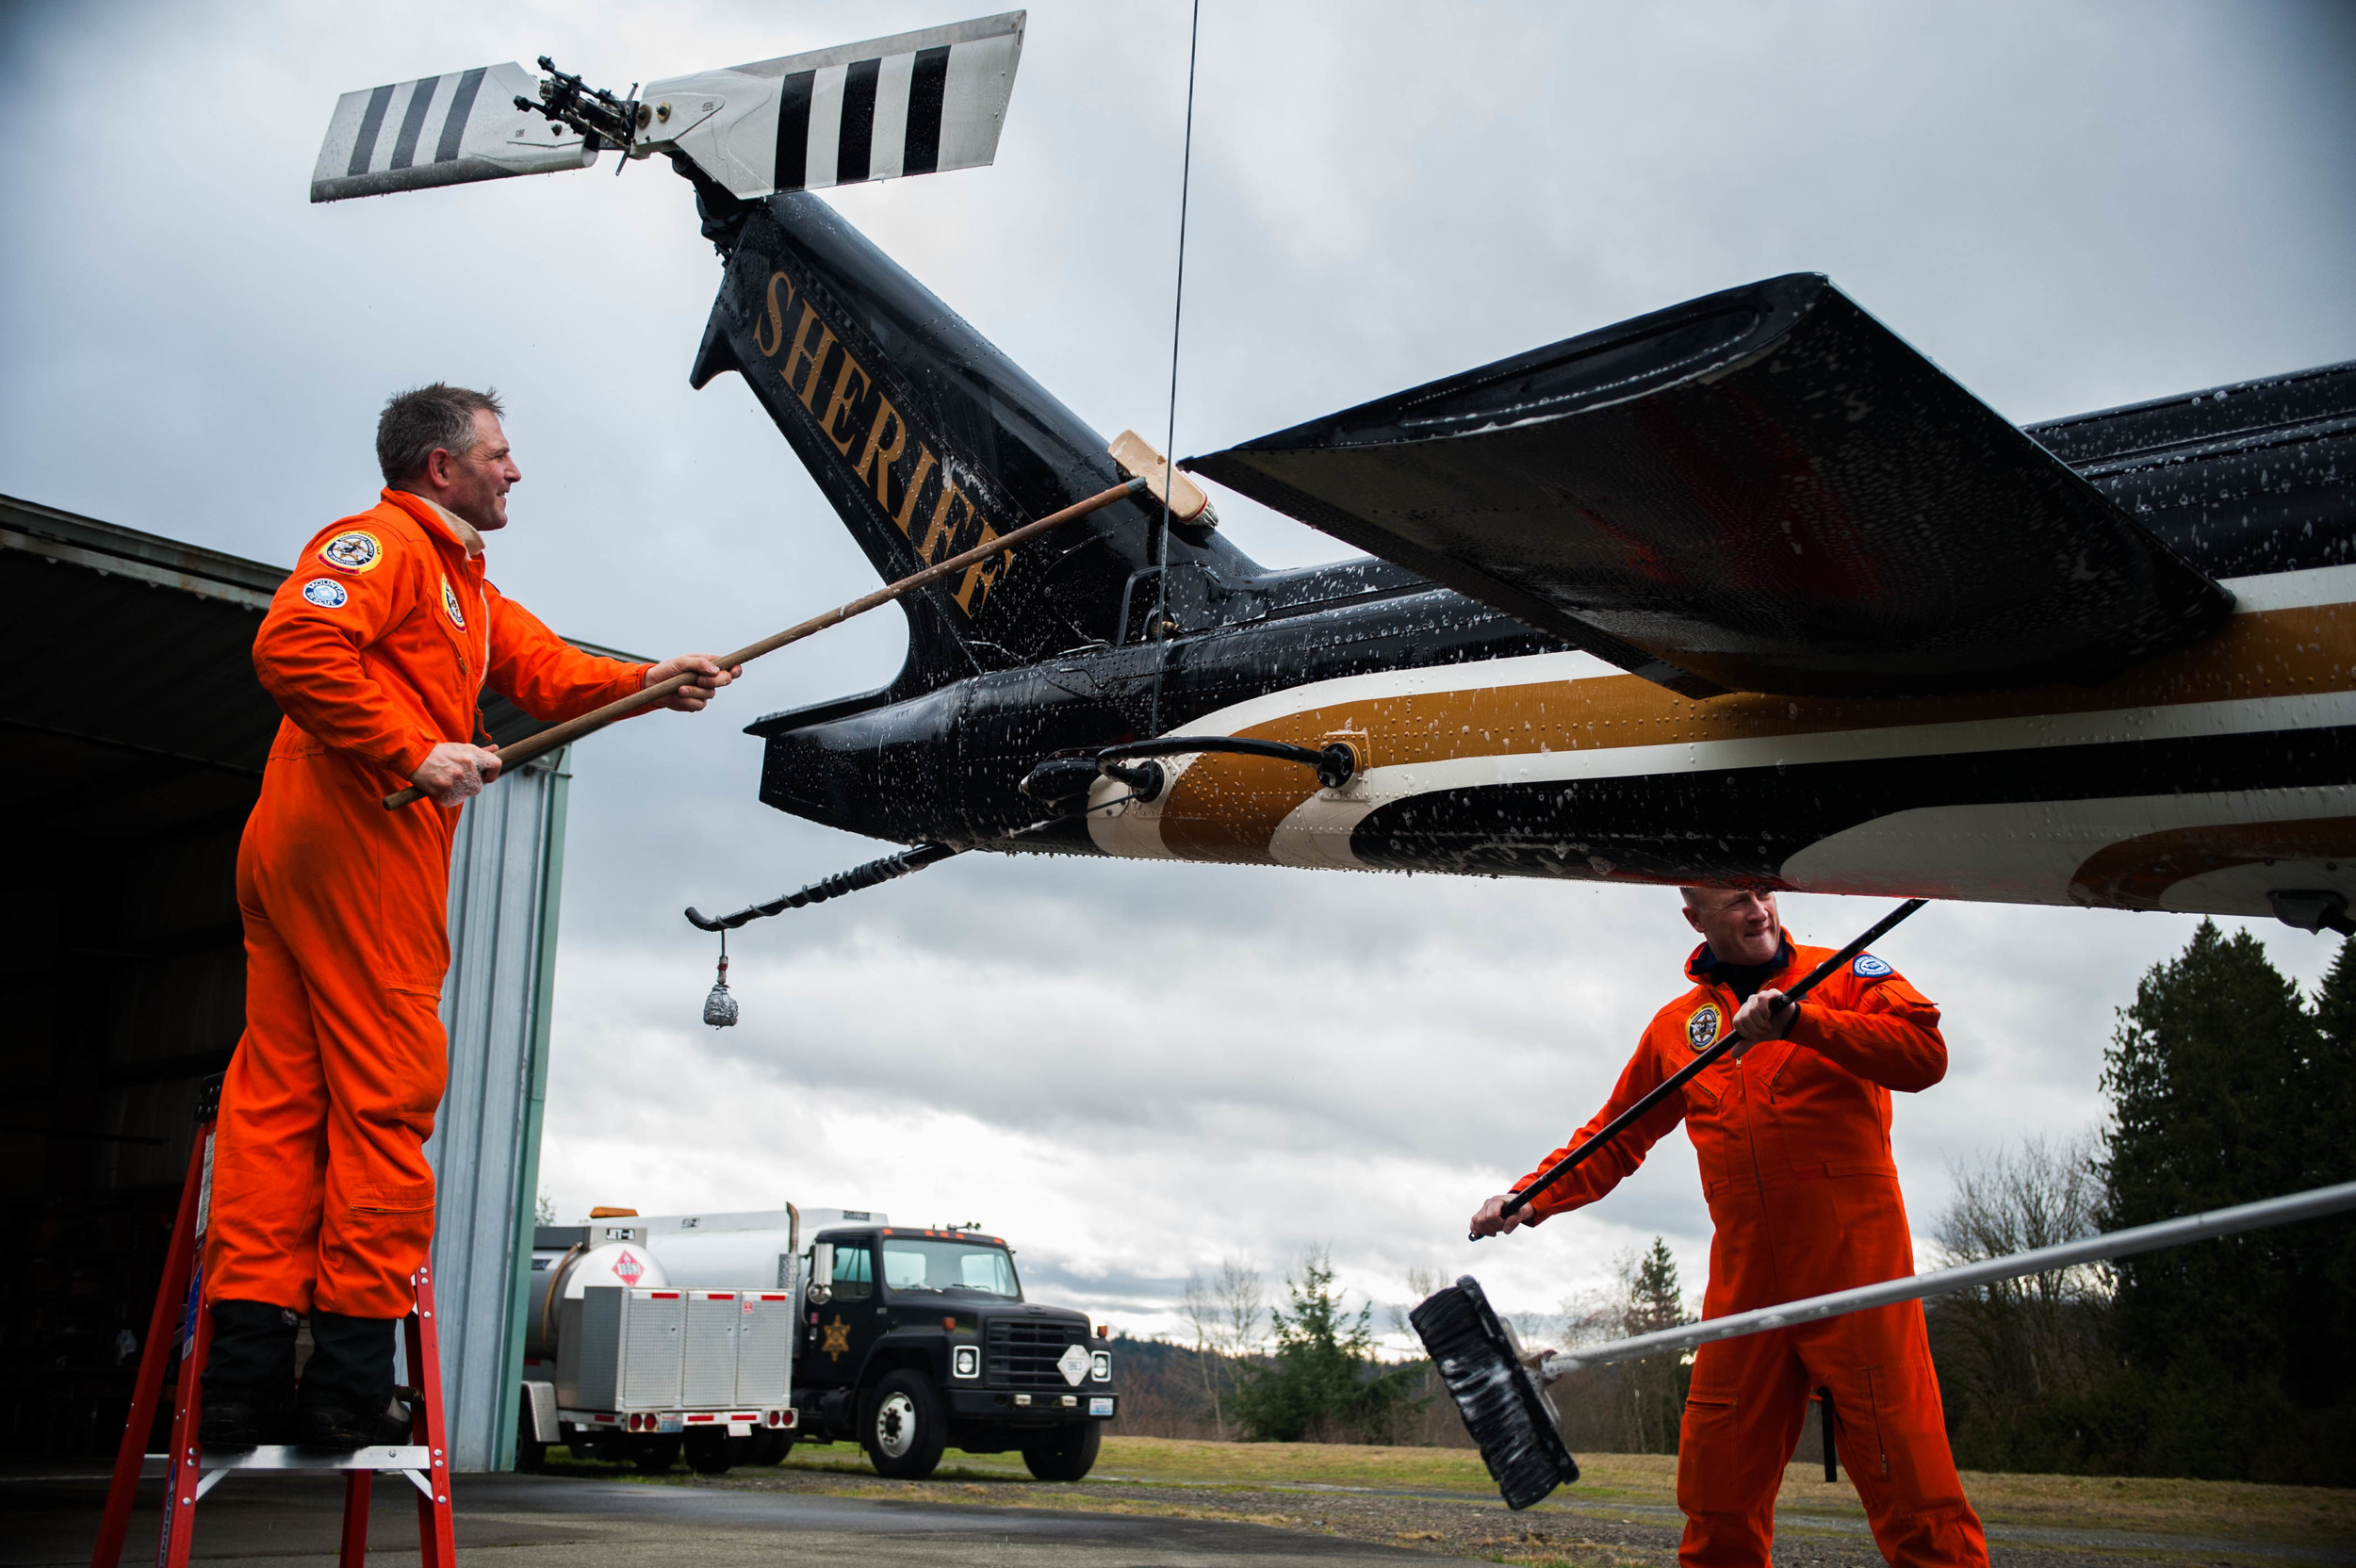 Ernie Zeller (left) and Oyvind Henningsen (right) help to clean SnoHawk 10 following a rescue training exercise in the mountains. Upon landing and securing the main rotor blades the entire five-man crew sets to work on their post-flight duties of cleaning and checking all aspects of the UH-1H helicopter.